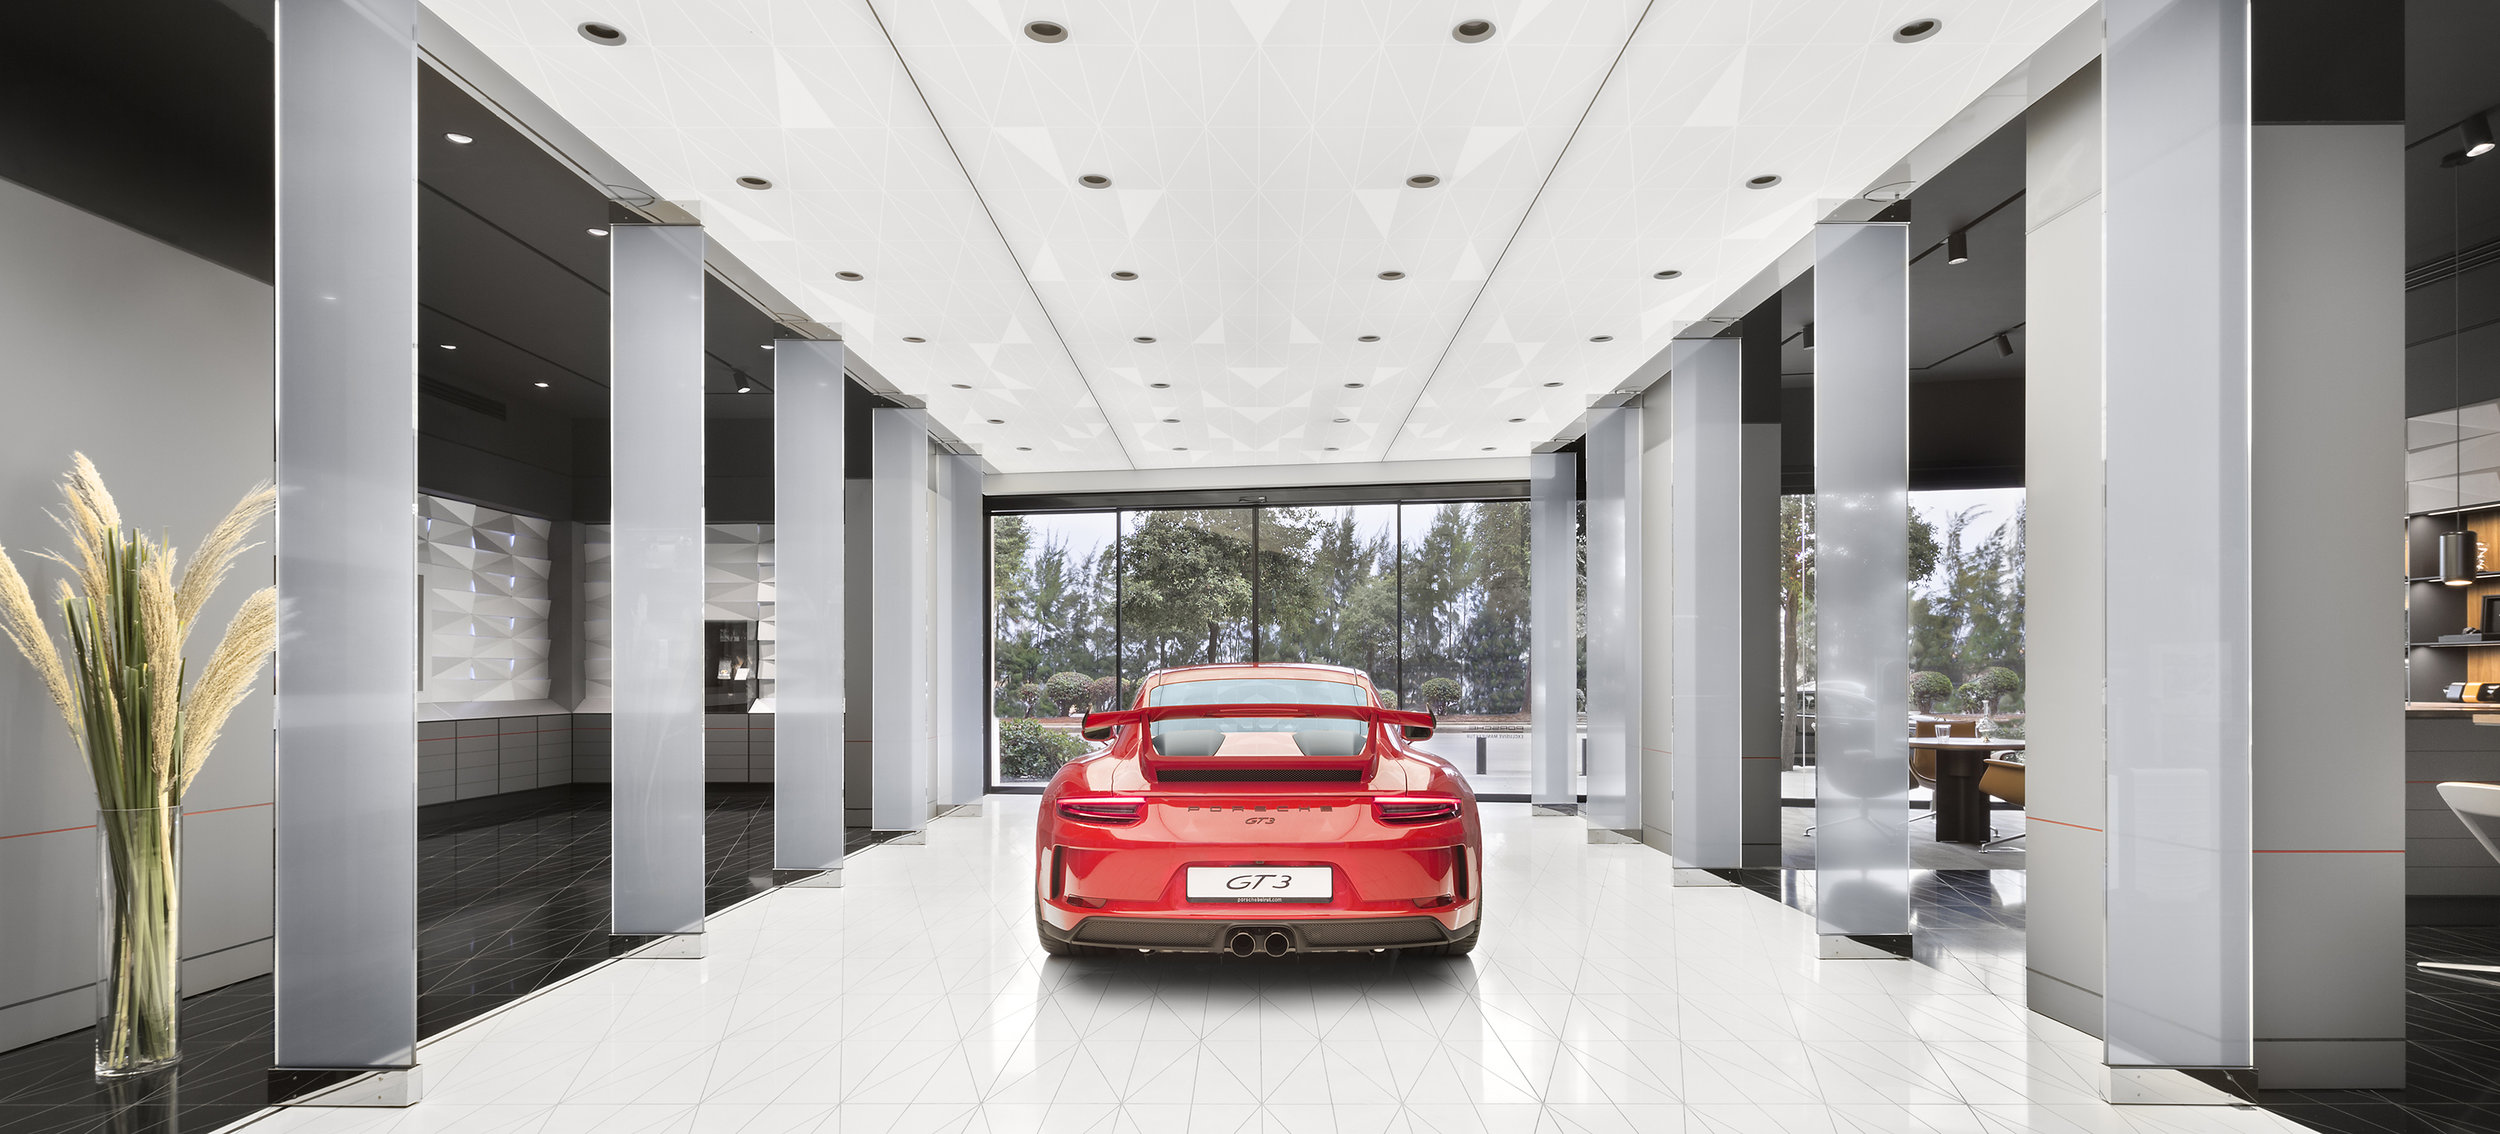 porsche-studio_retail-interior-design_coordination-berlin_05.jpg